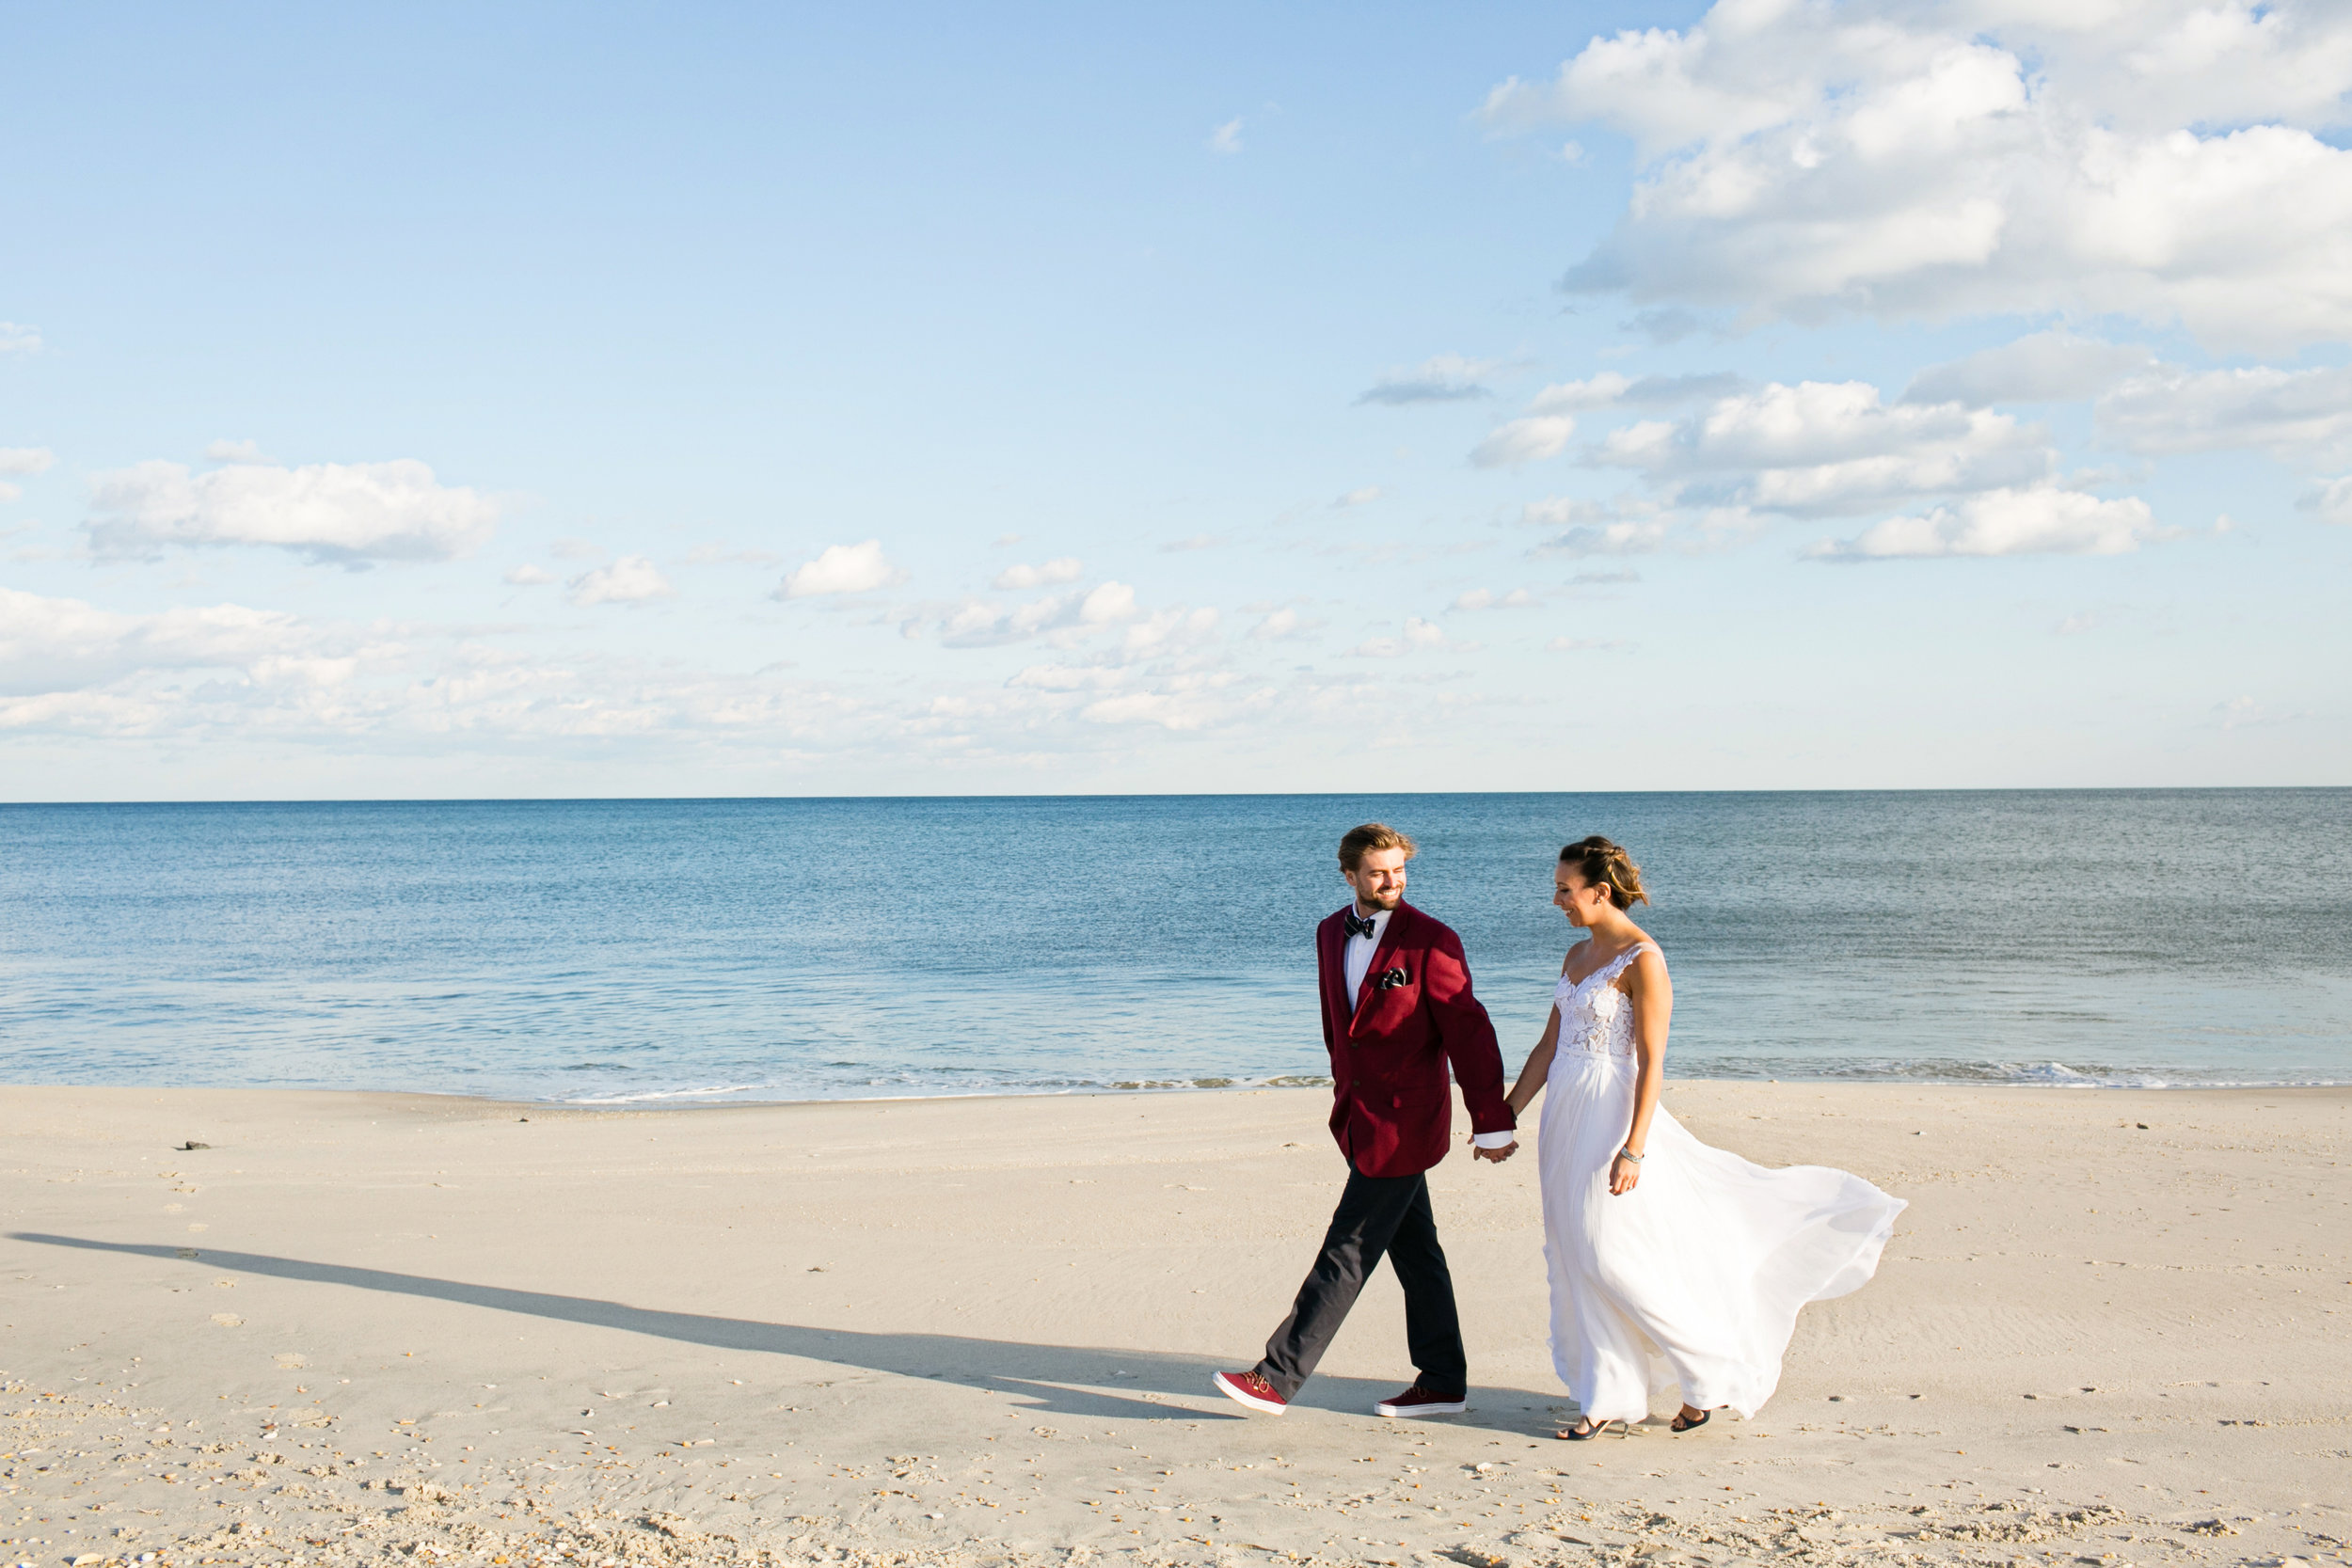 Jersey_Shore_Wedding_39.JPG